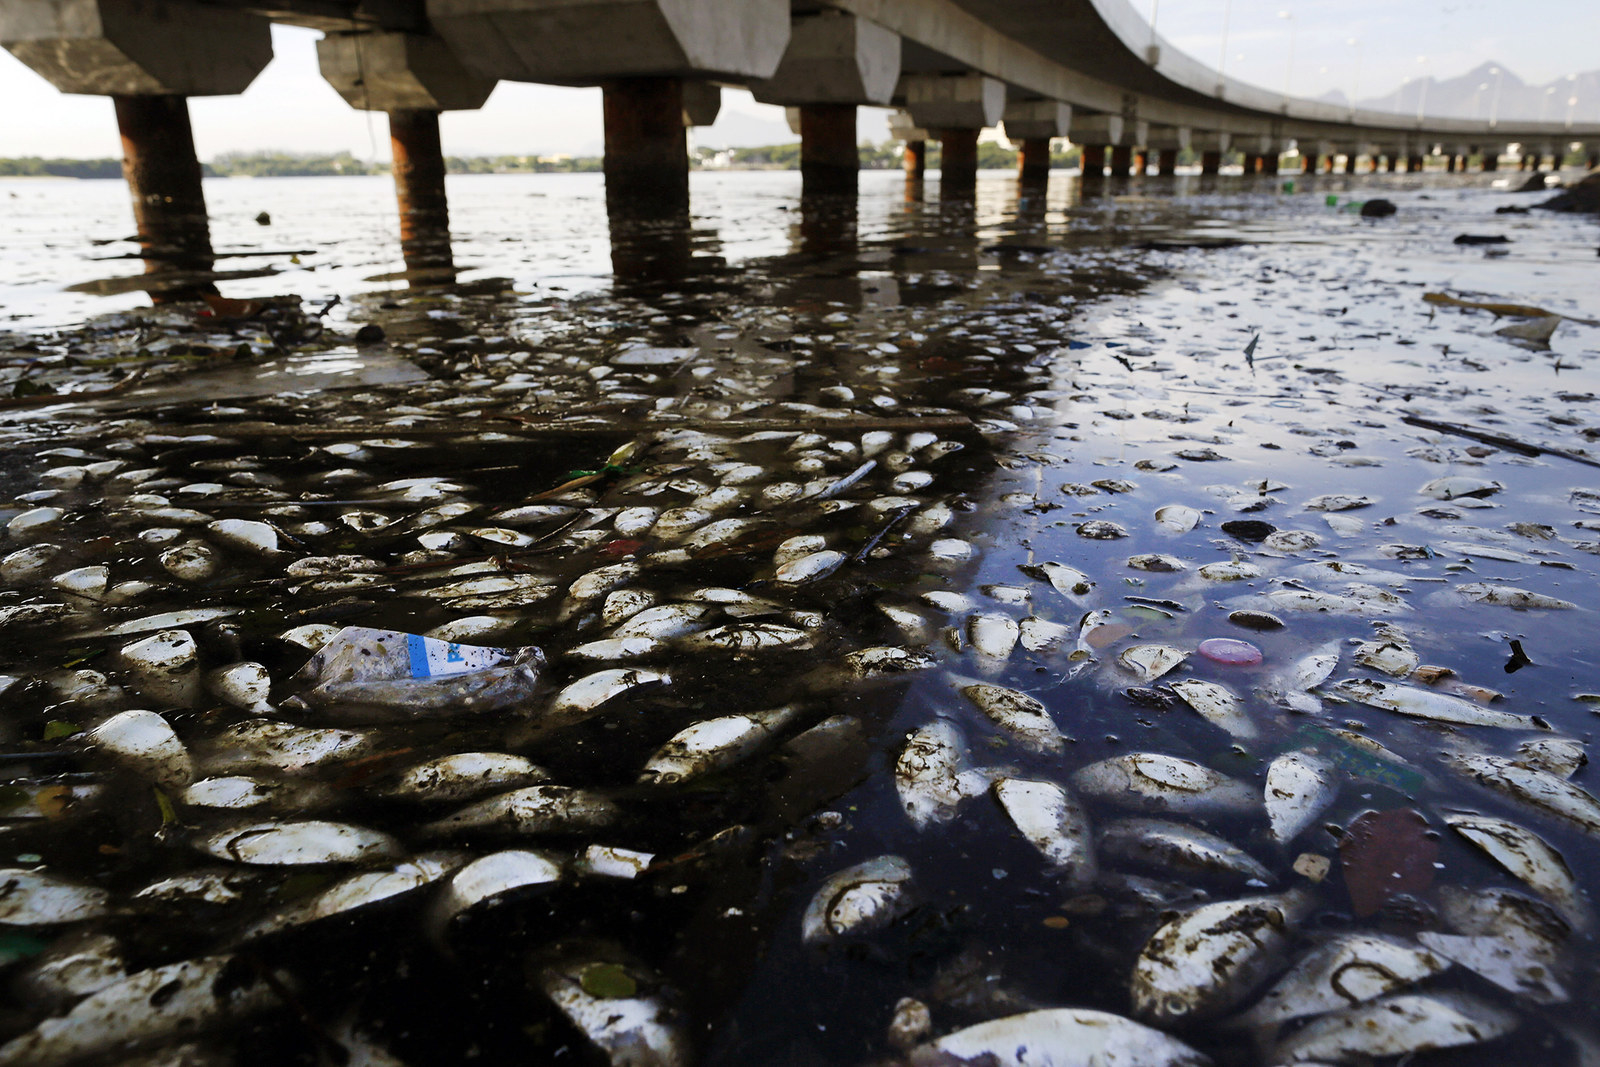 Dead fish and trash float in the polluted Guanabara Bay in Rio de Janeiro, Brazil, on Feb. 25, 2015.